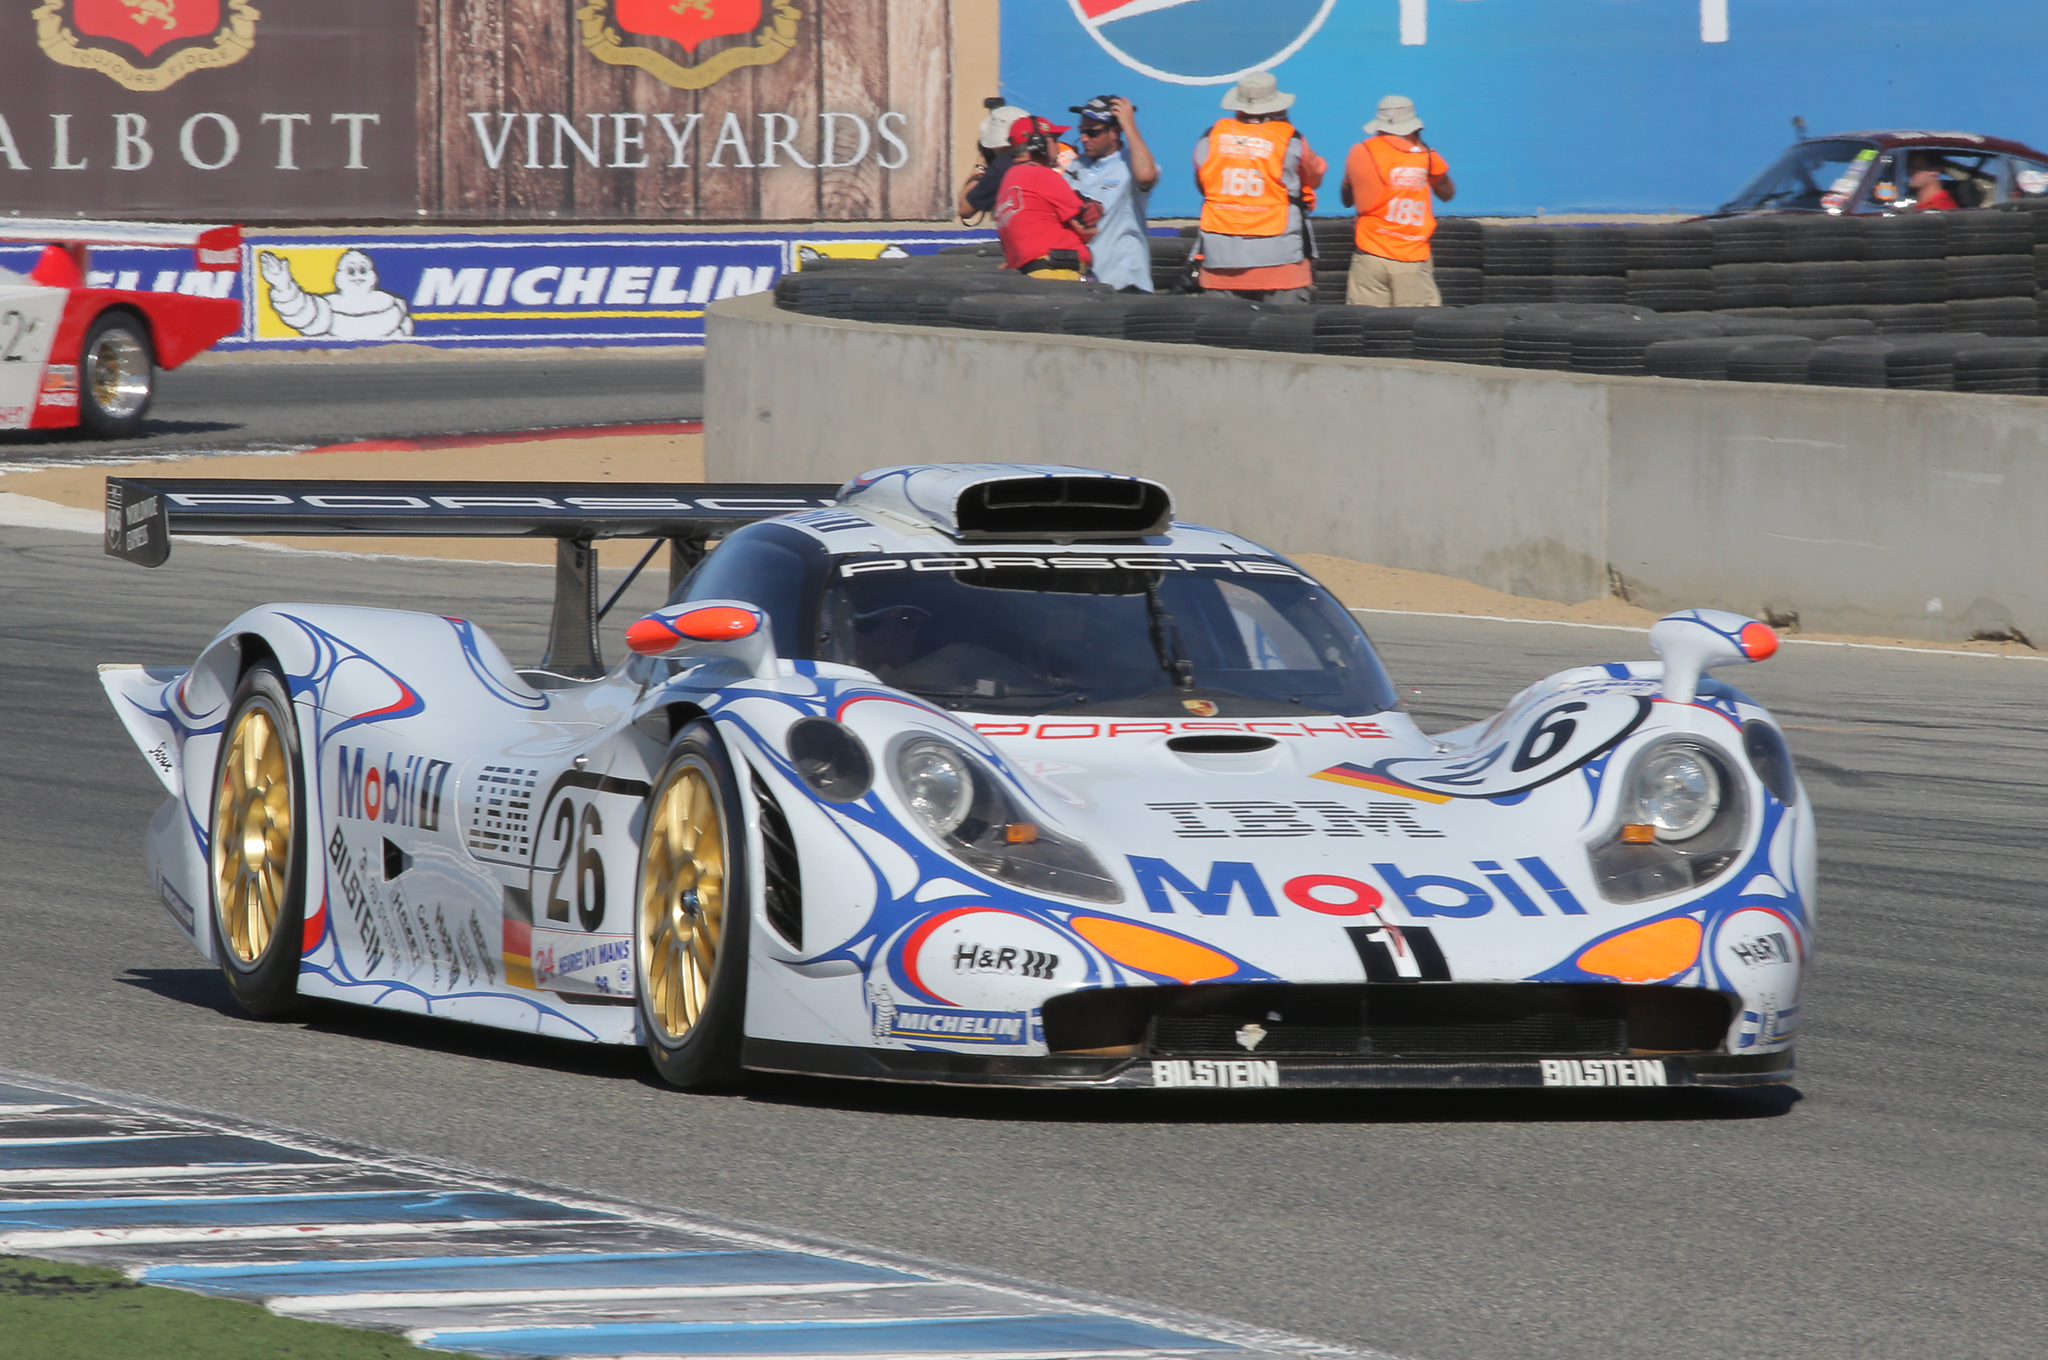 9. The winner of the 1998 24 Hours of Le Mans, a Porsche 911 GT1.